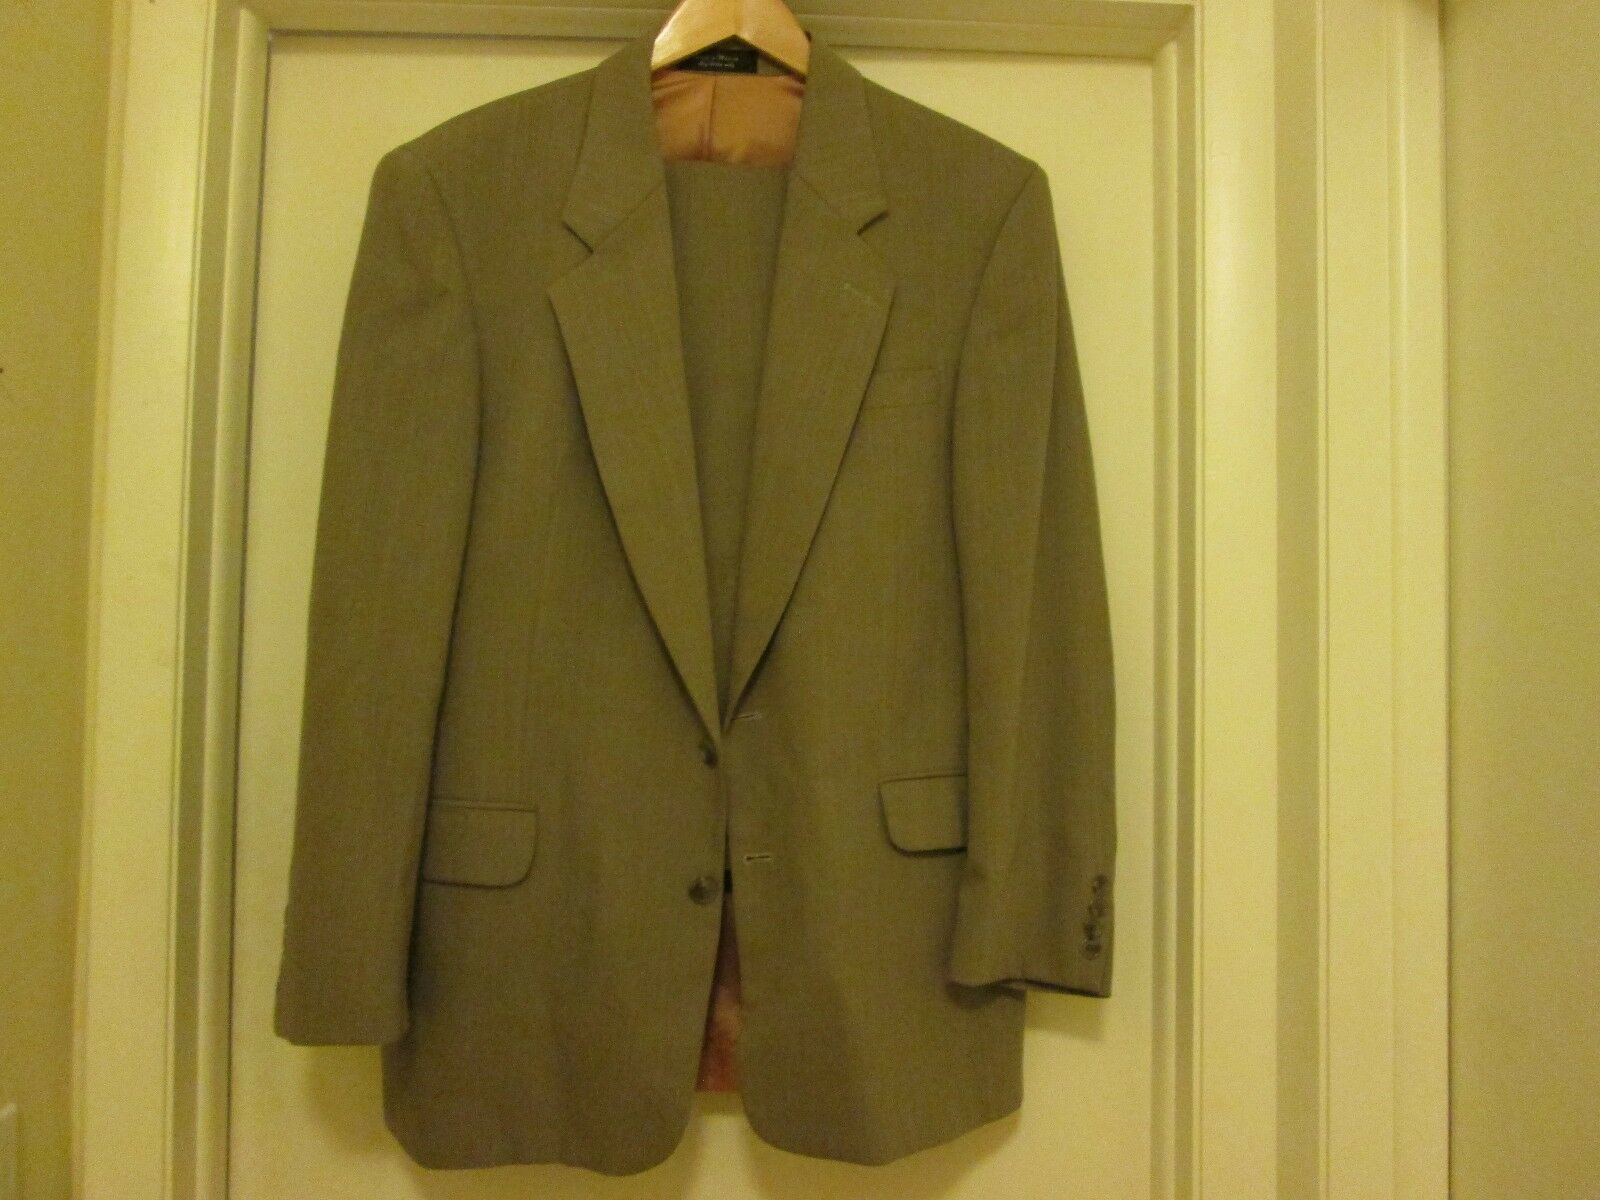 Gianfranco Ruffini Made In  Size 36 Suit New No Tags 100% Wool Never Worn